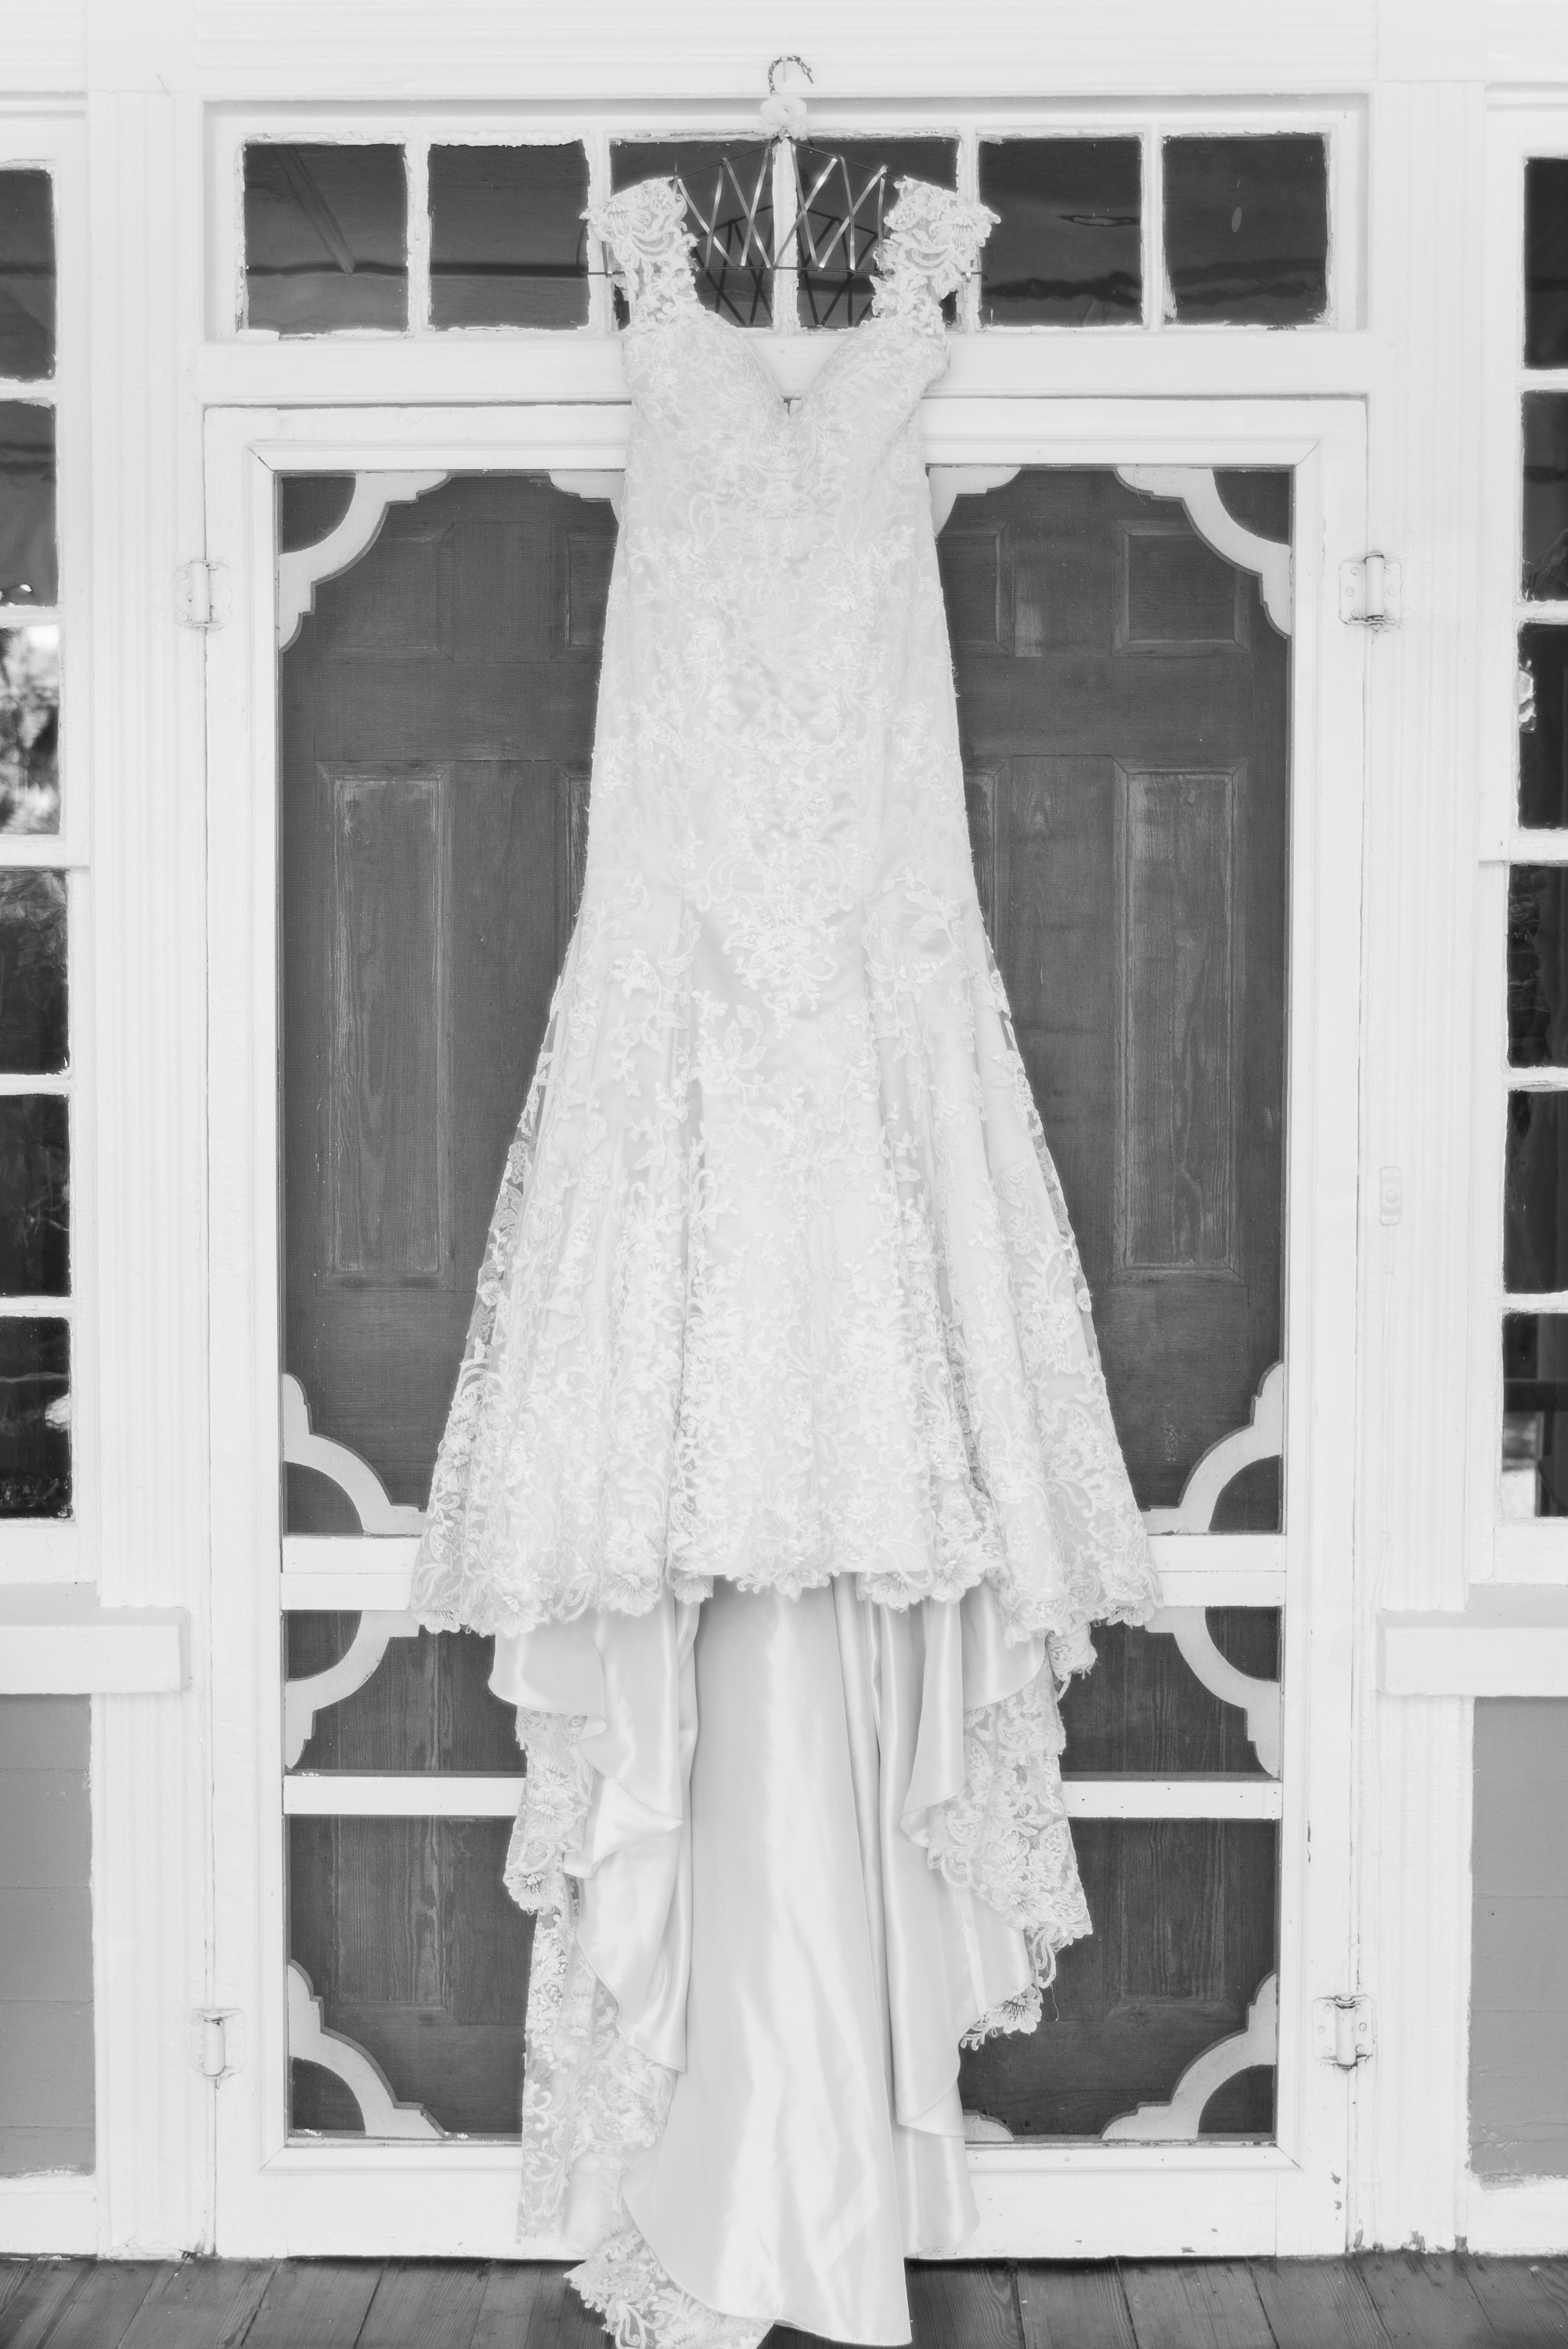 J Major bridal gown hanging up.